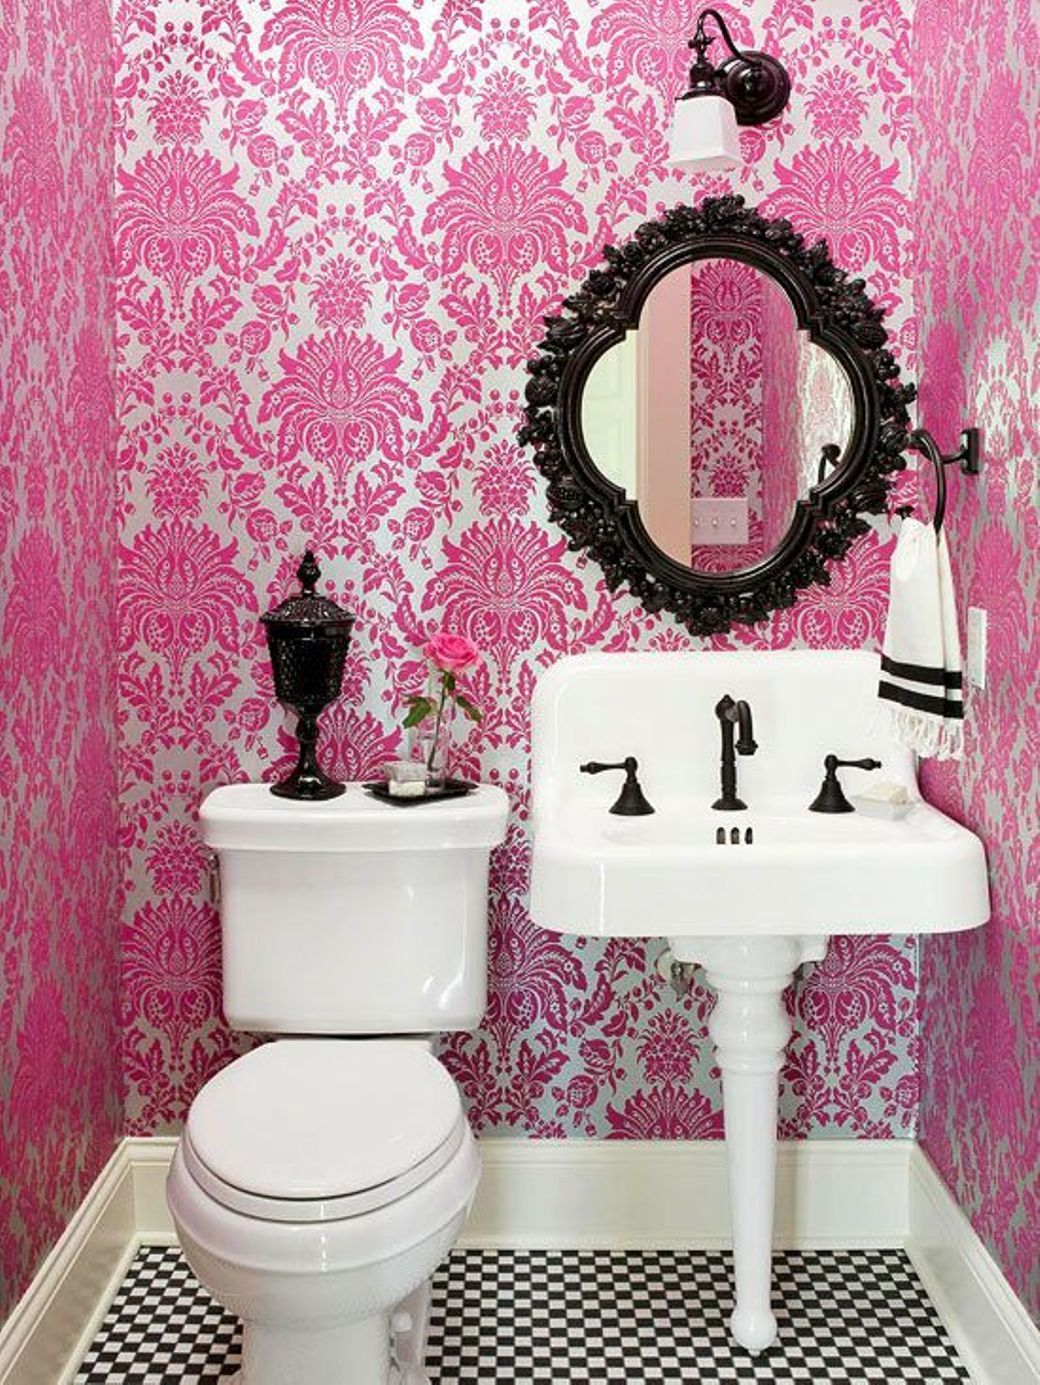 Bathroom Small Decorating Ideas Great With Graphic Pink Wallpaper And